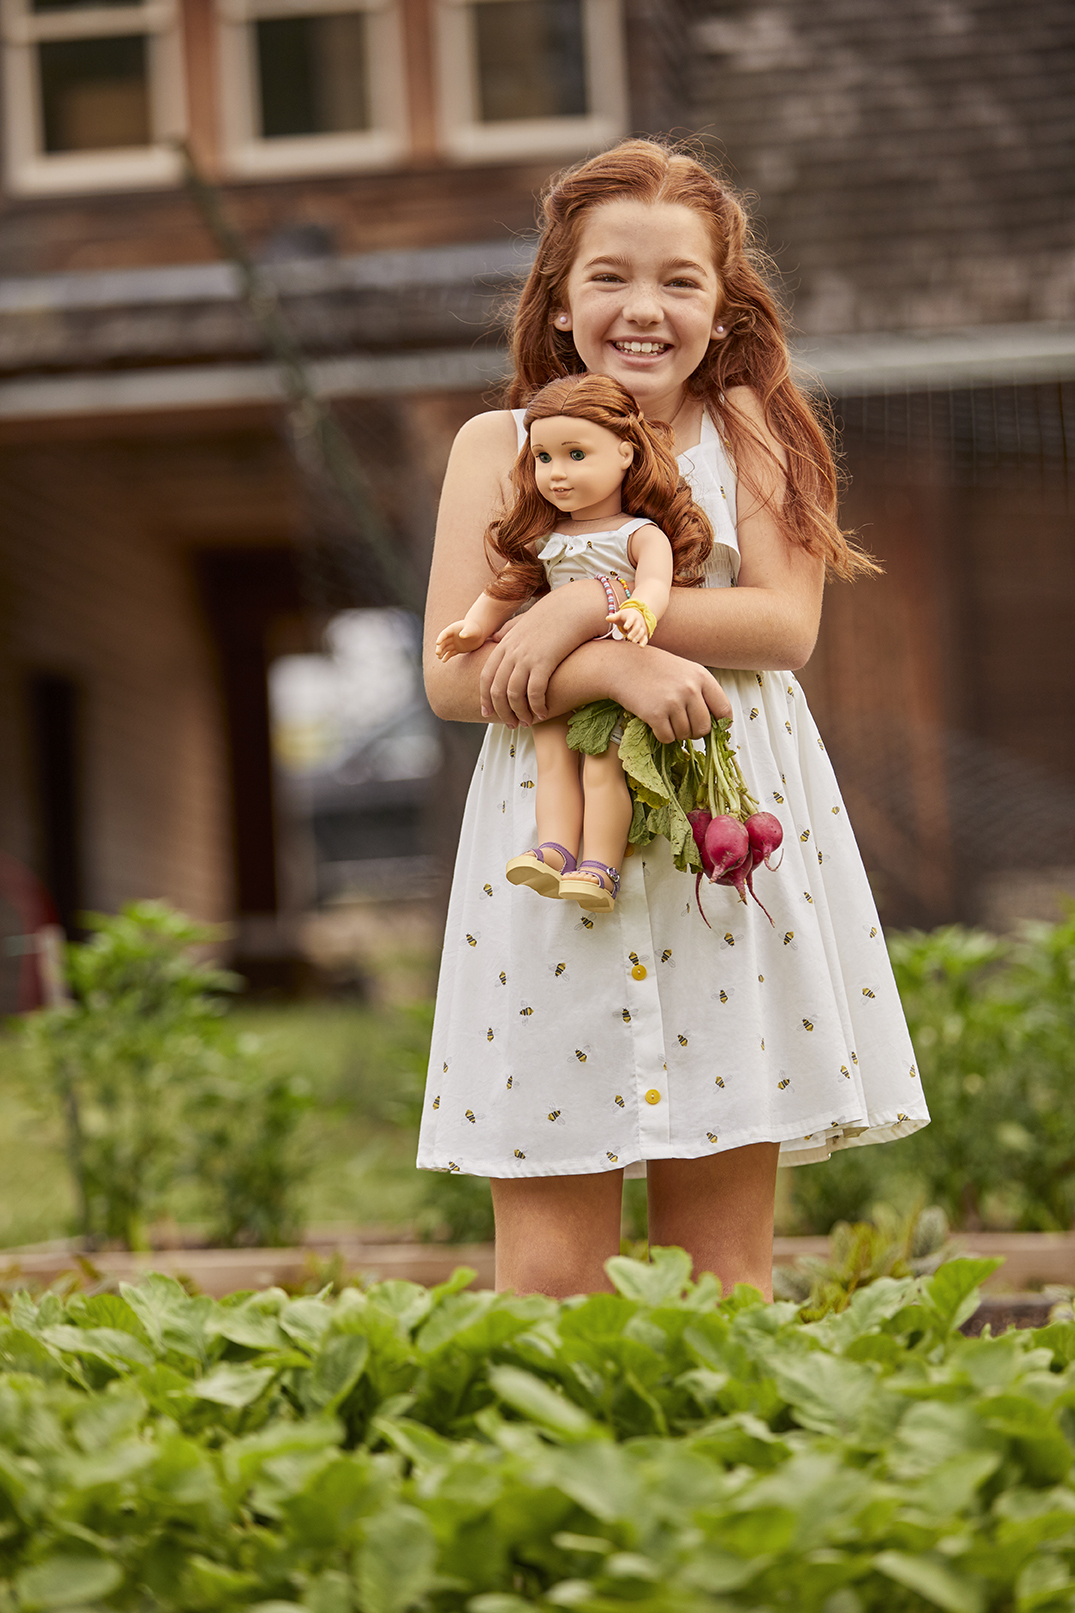 Meet Blaire Wilson American Girl's 2019 Girl of the Year